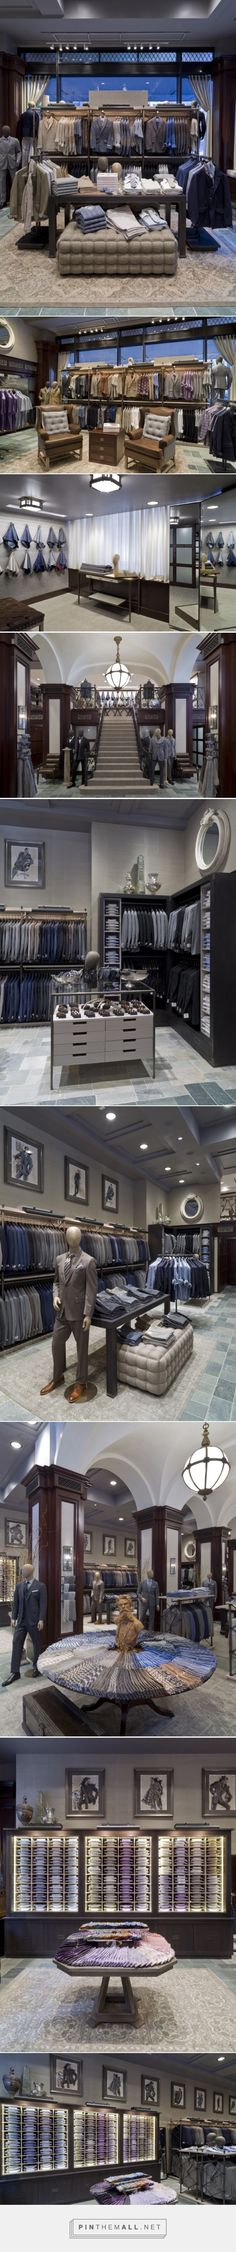 Joseph Abboud Flagship Store by Jeffrey Hutchison & Associates, New York City » Retail Design Blog... - a grouped images picture - Pin Them All